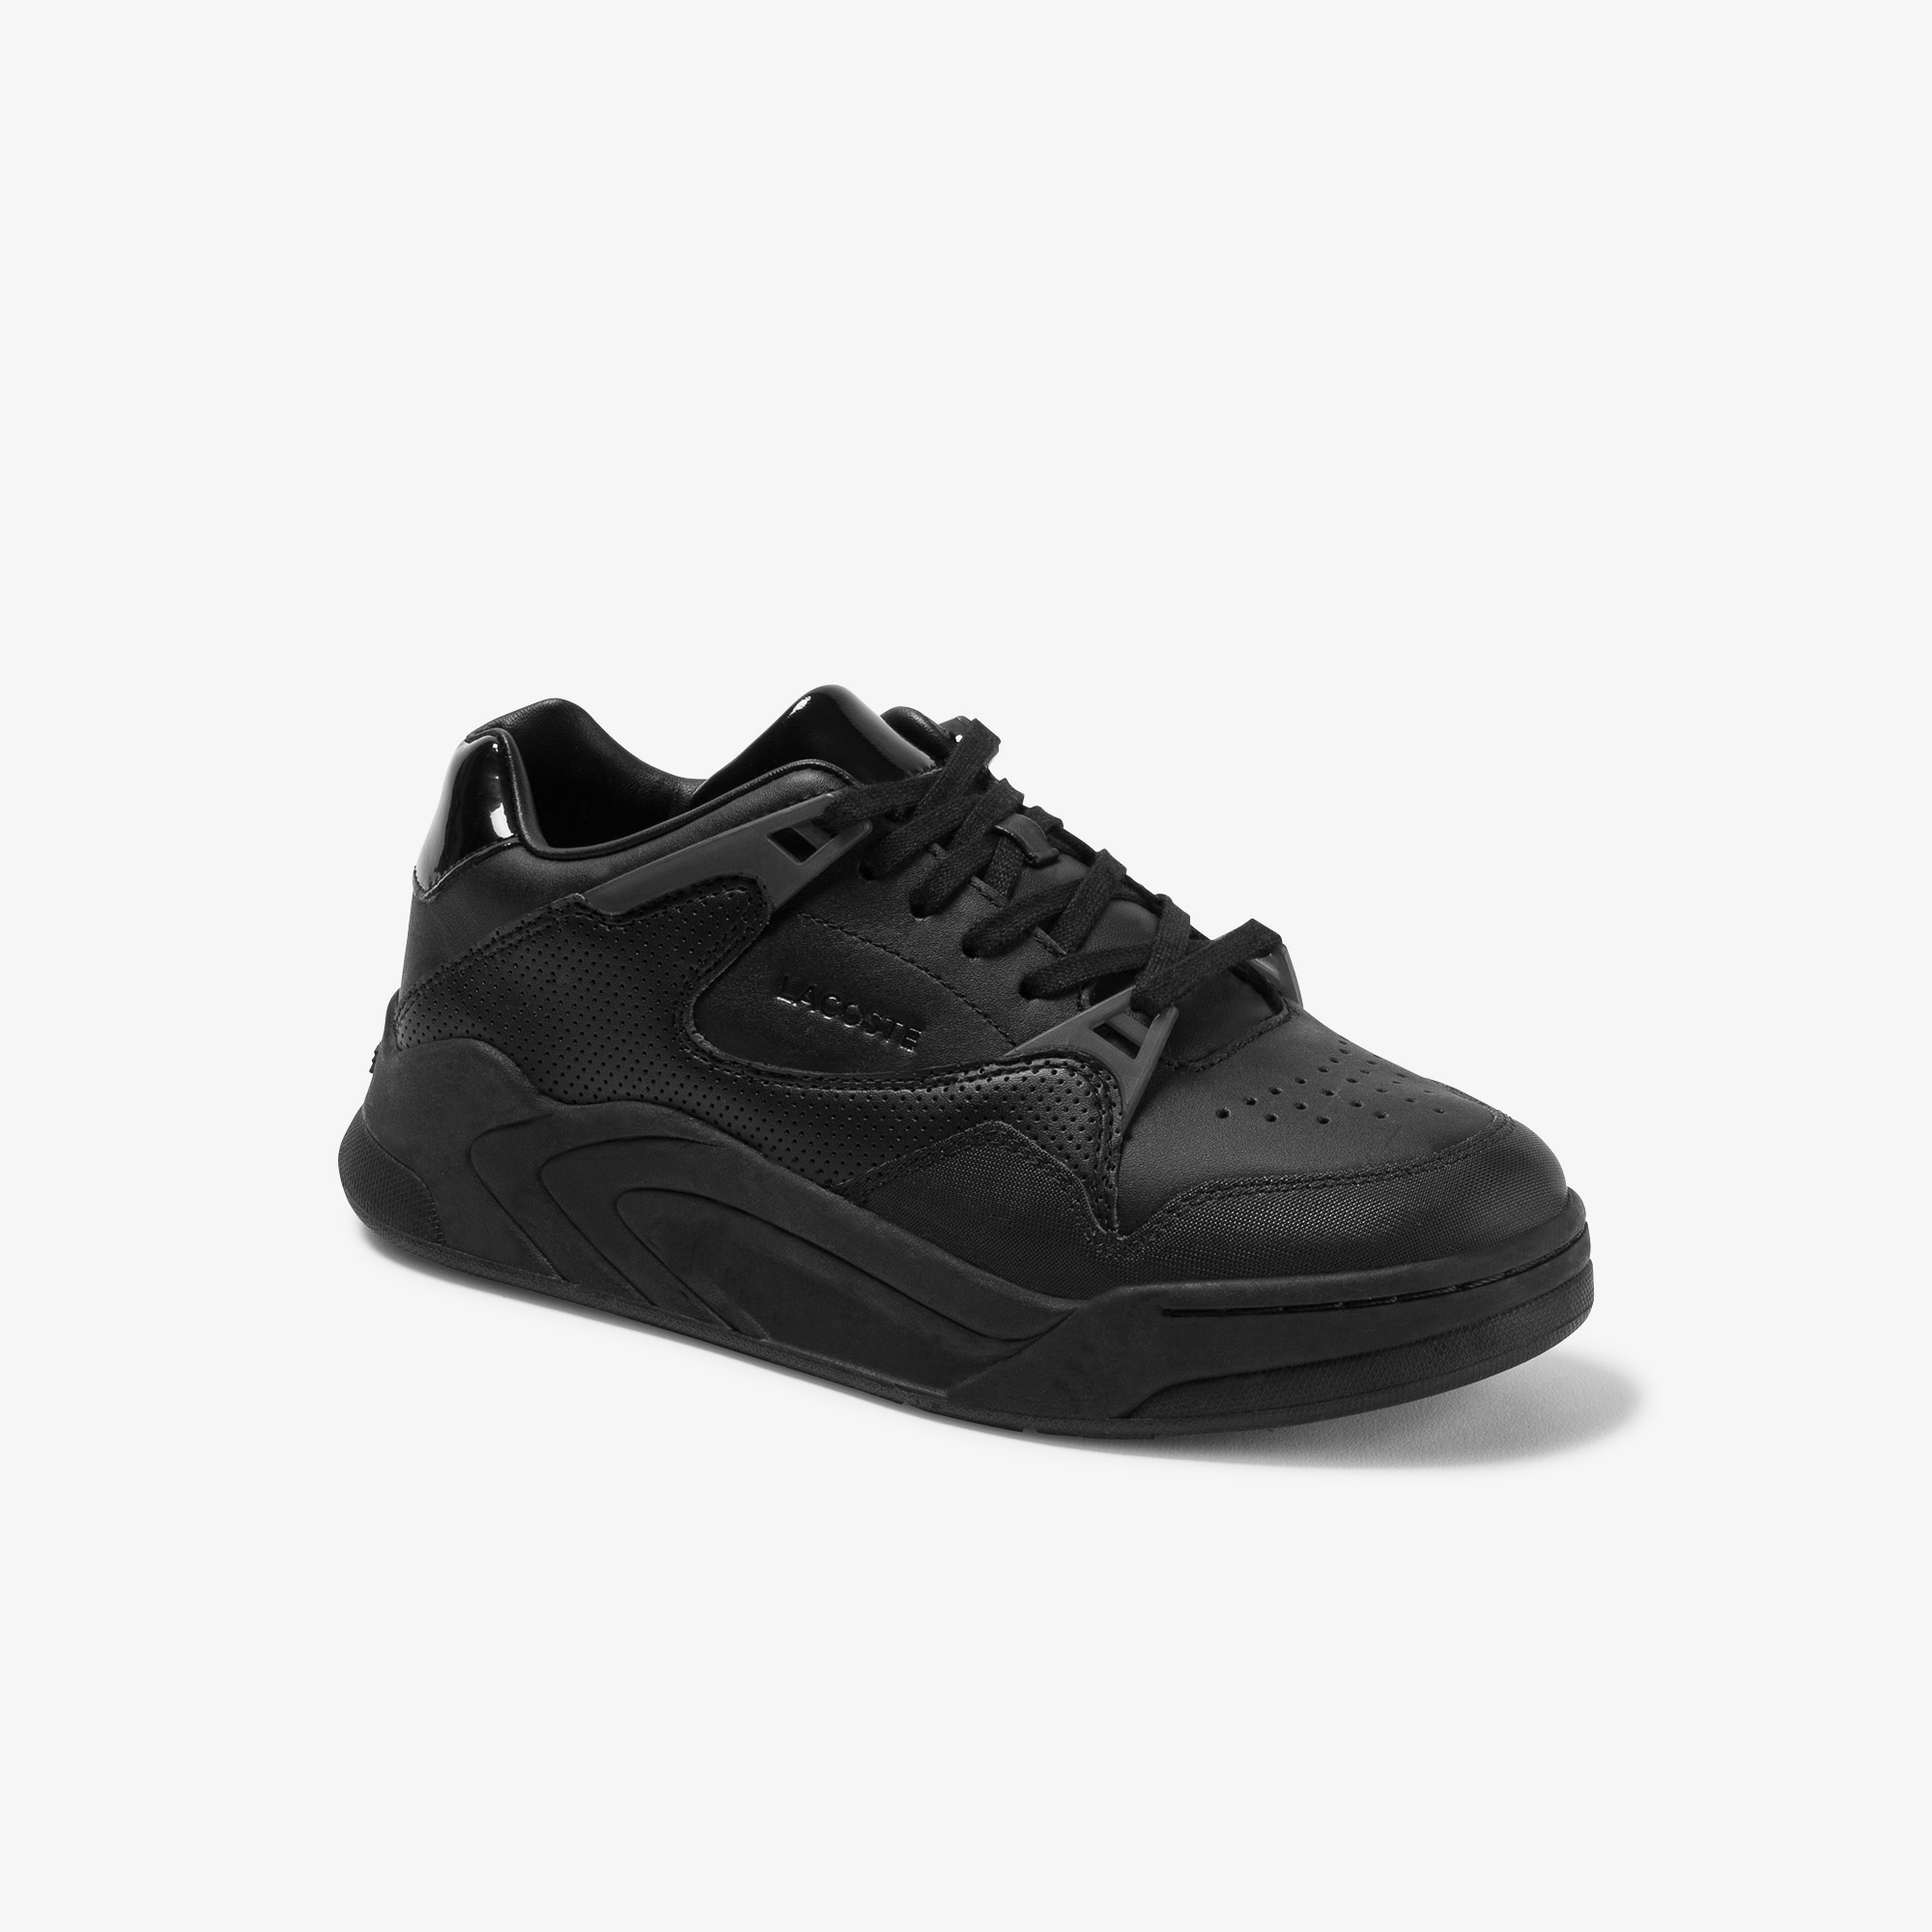 Damen-Sneakers COURT SLAM aus Ton-in-Ton Leder